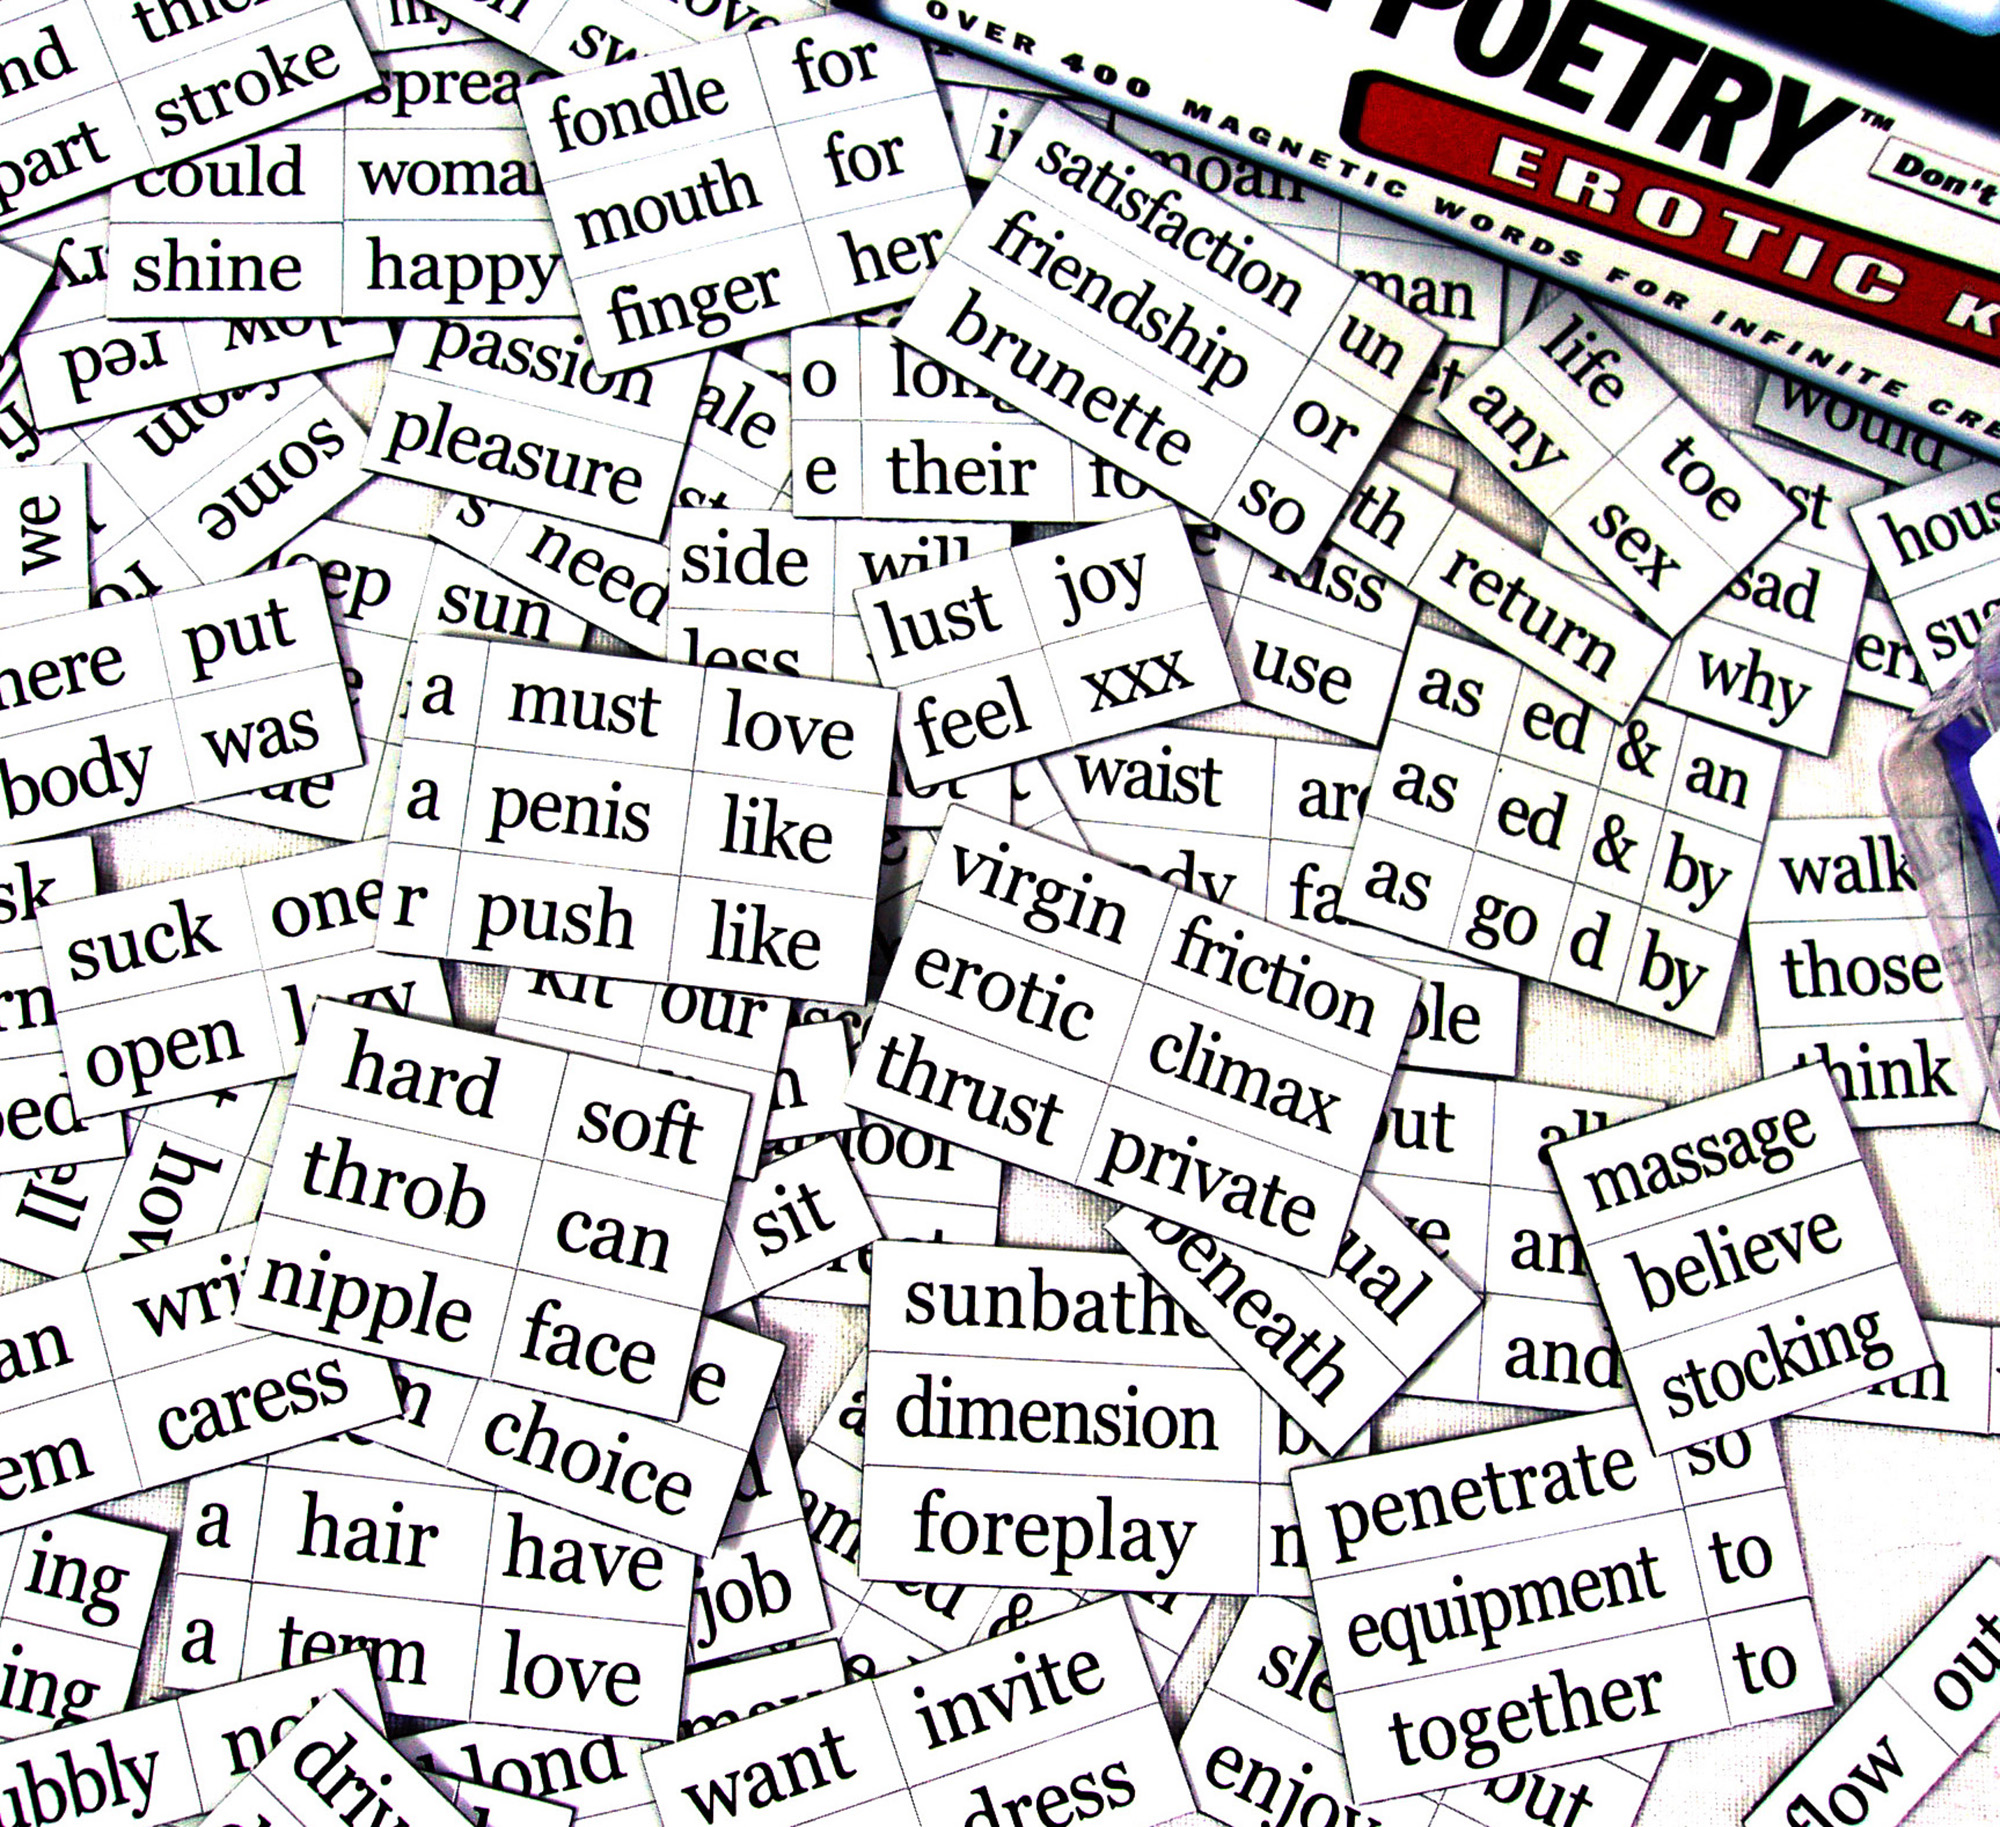 Erotic magnetic poetry simply matchless